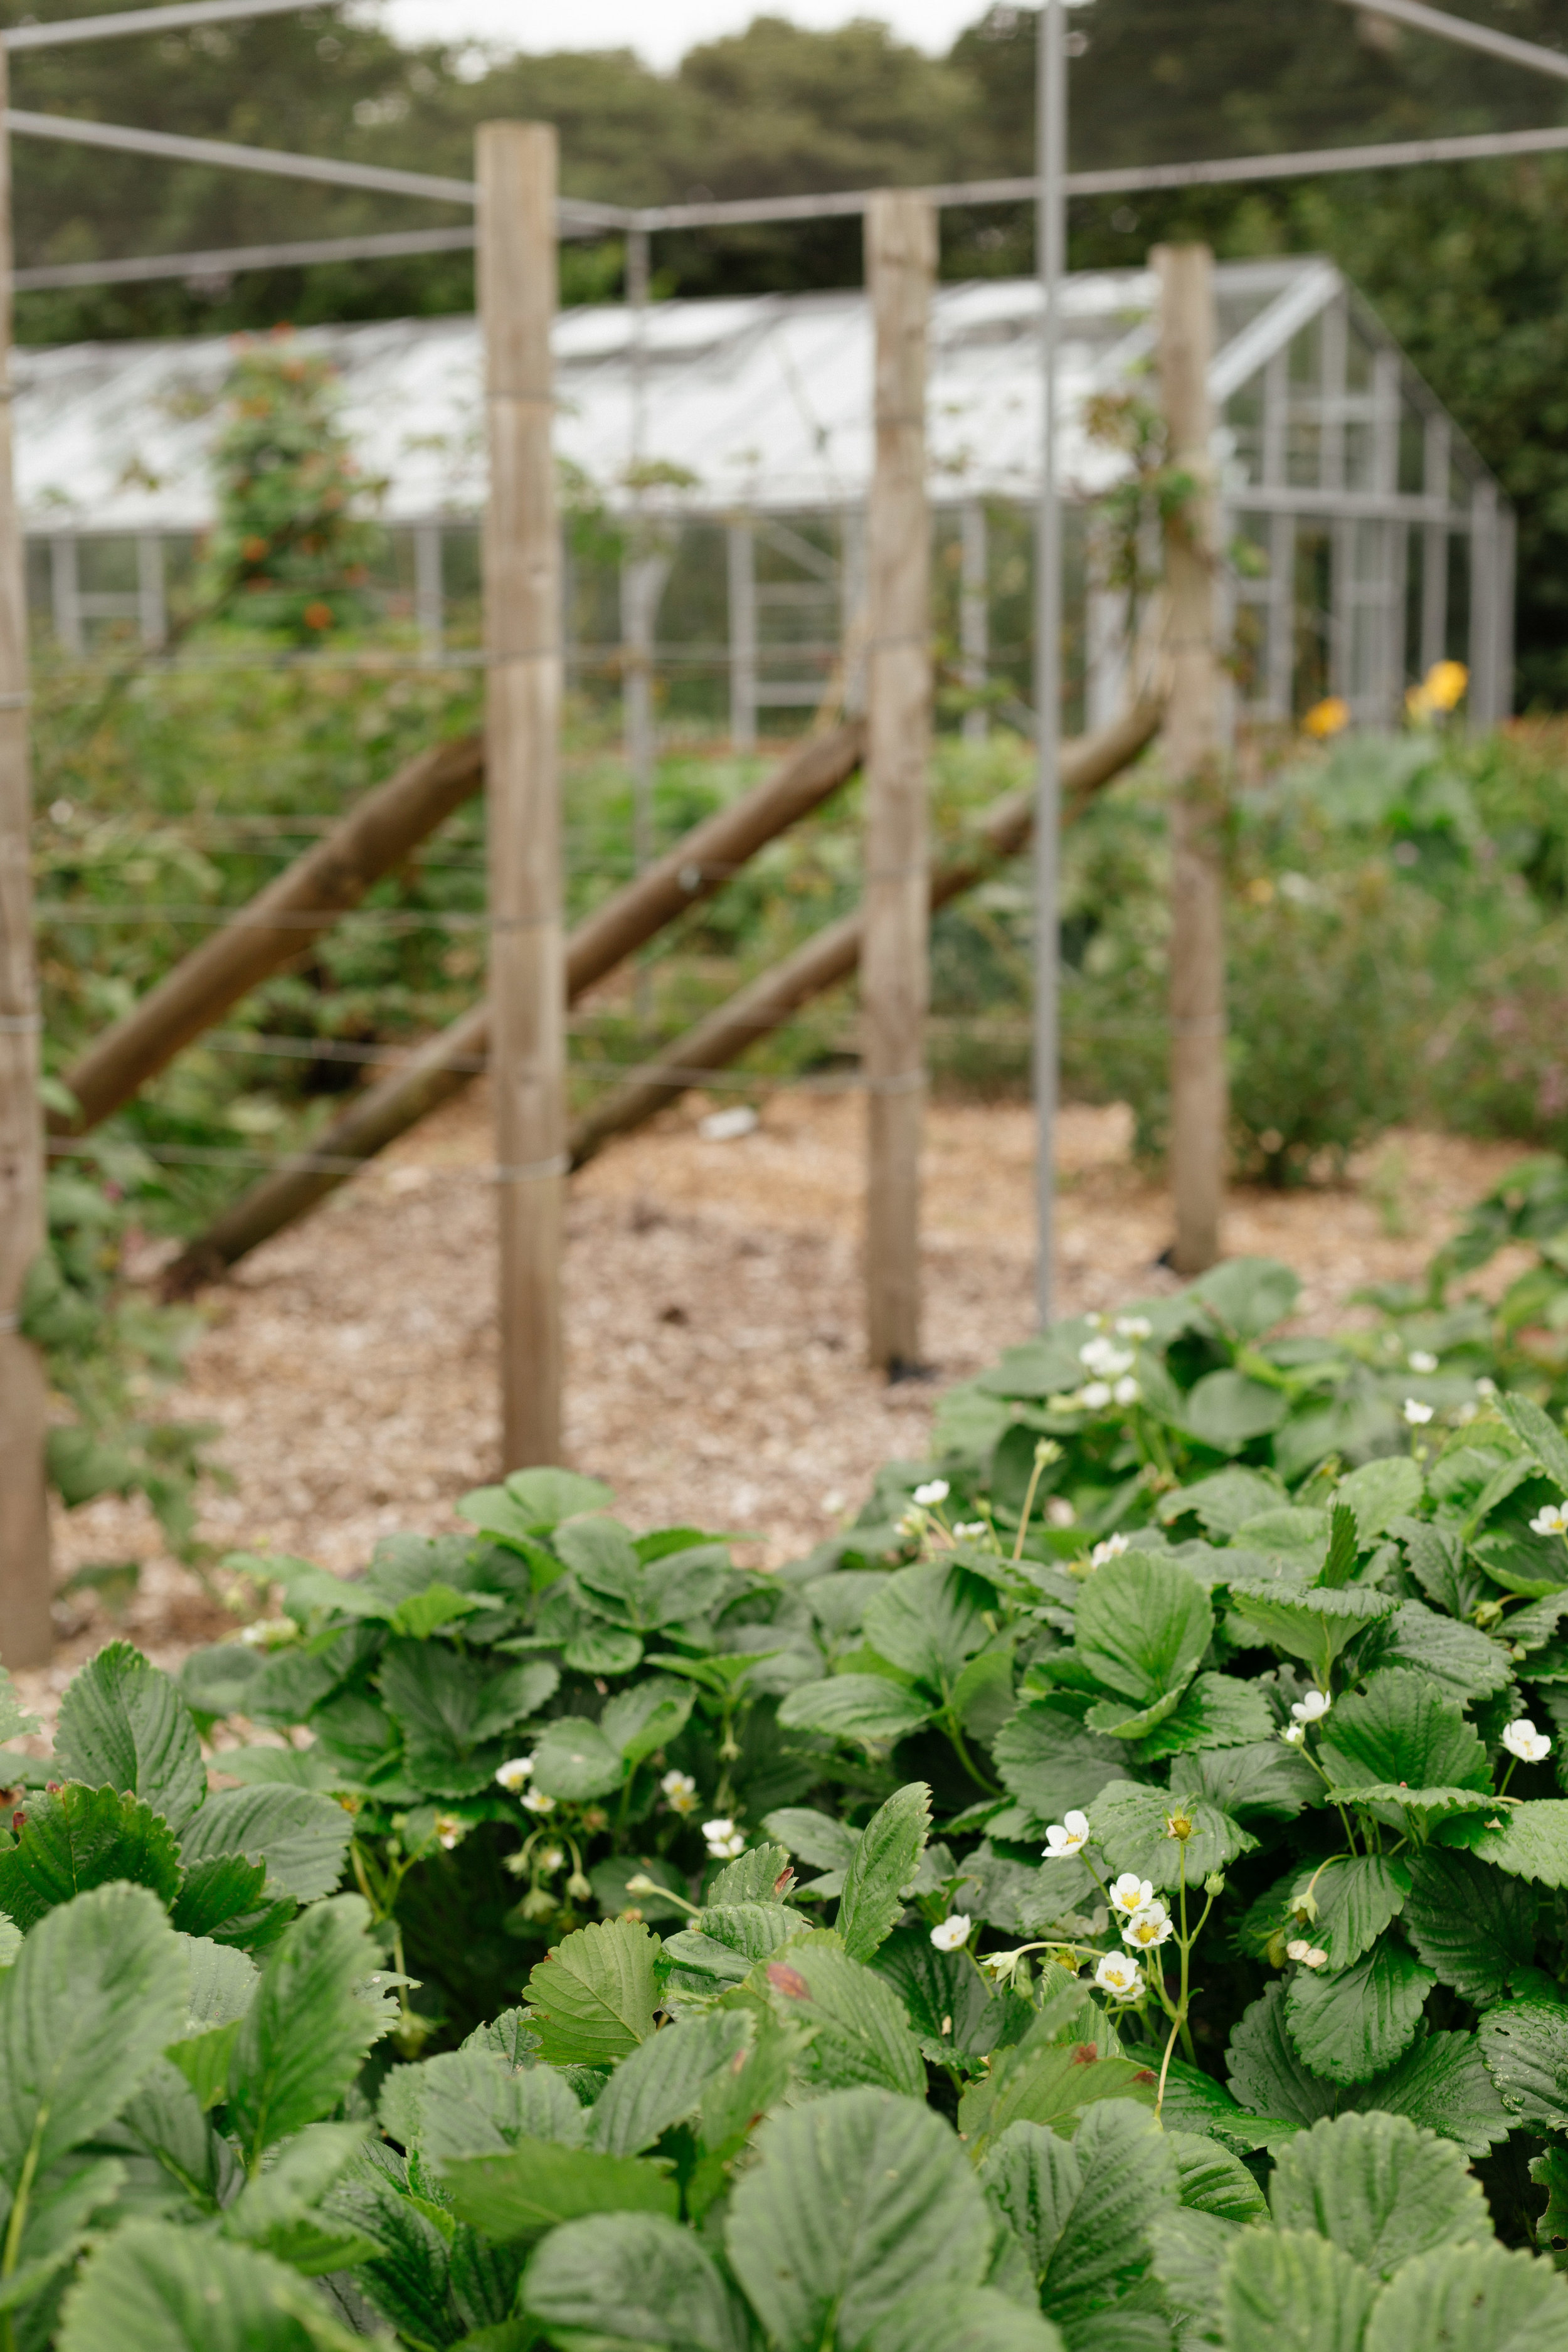 Flowering strawberry bushes protected under netting in the garden.